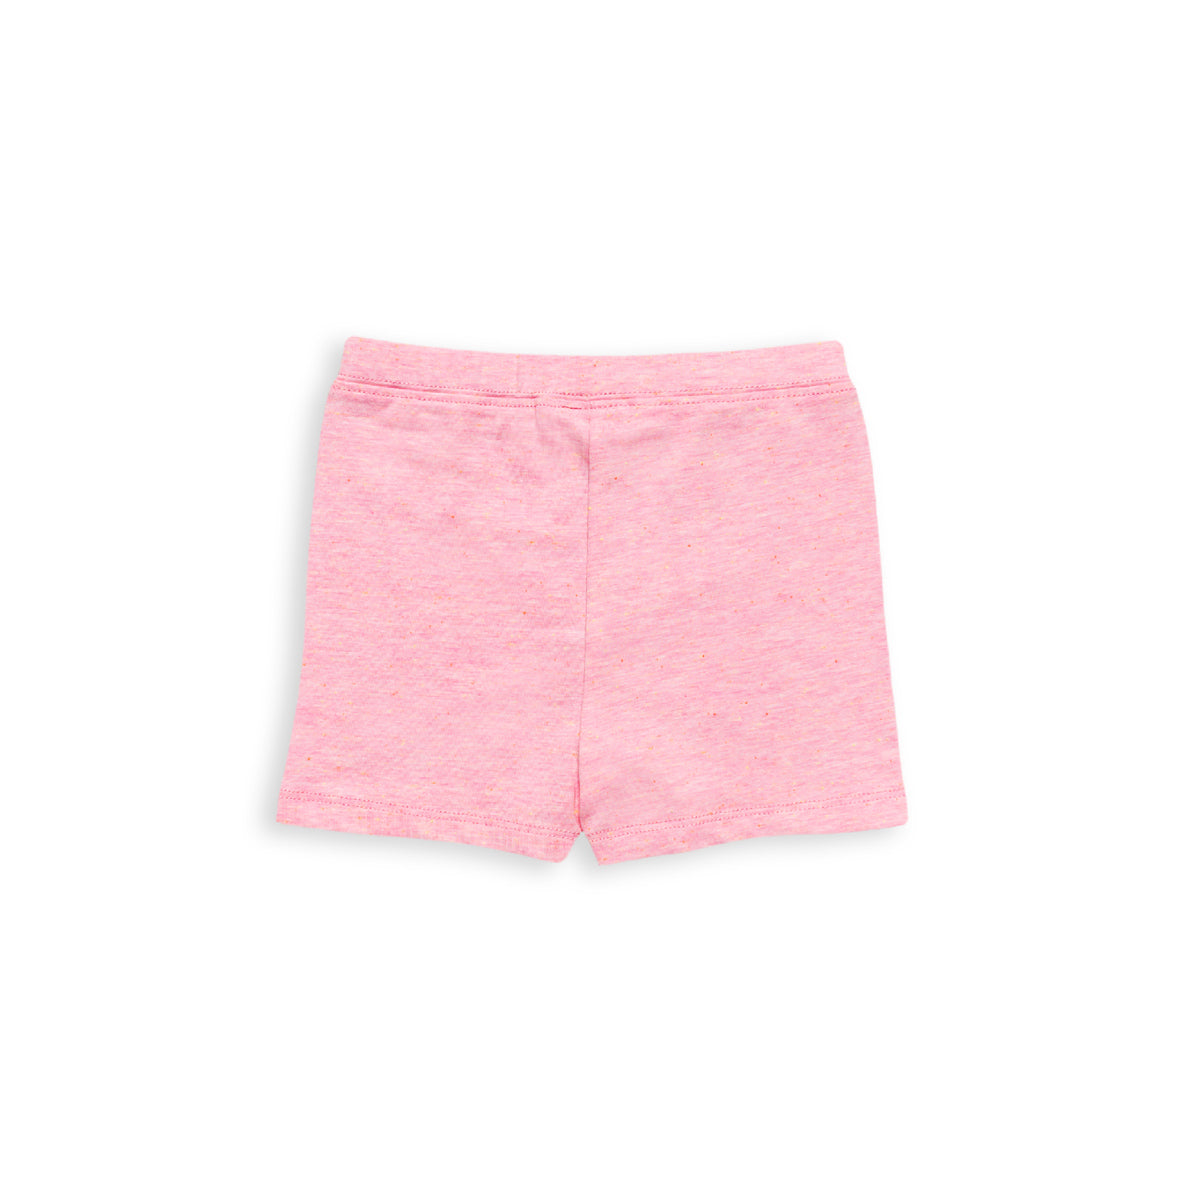 Confetti Stretch Short